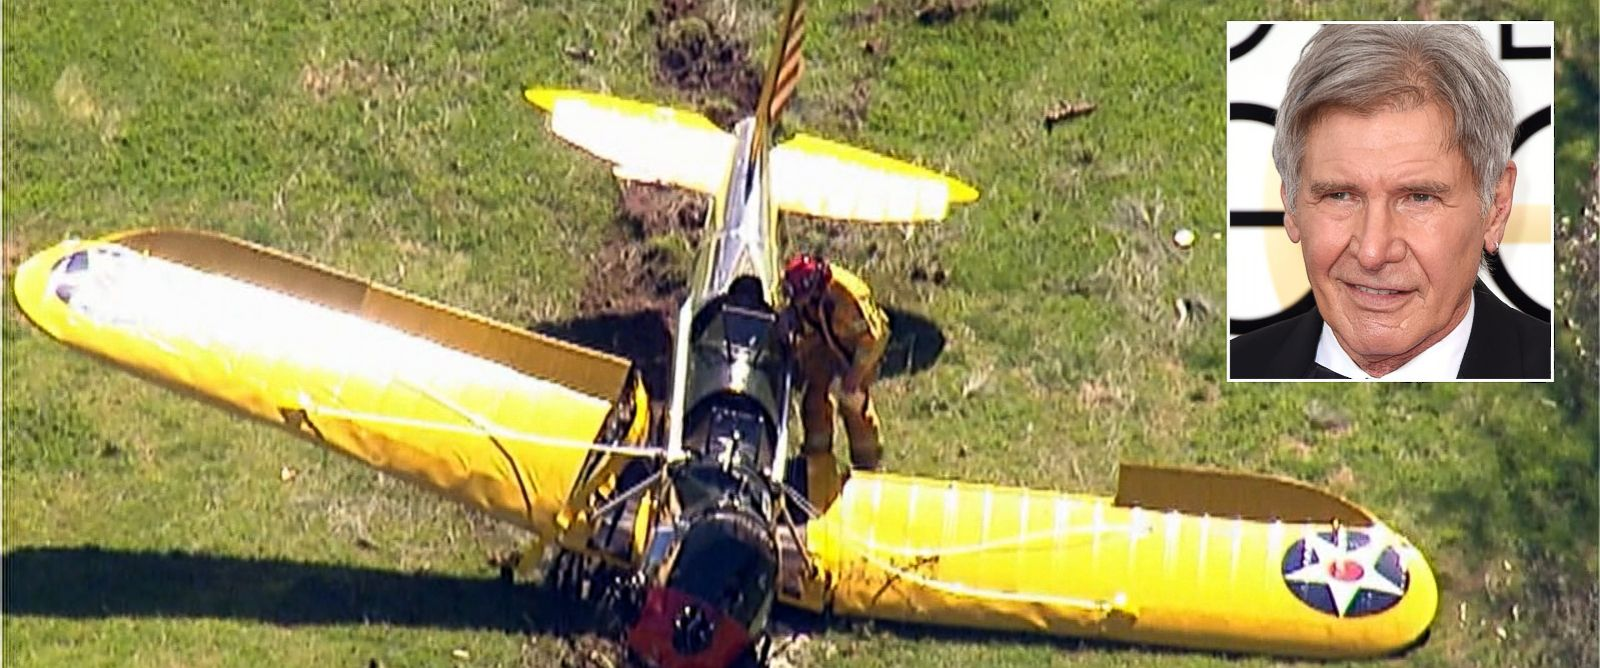 PHOTO: A single-engine plane crashed at the Penmar Golf Course near Santa Monica Municipal Airport, March 5, 2015.